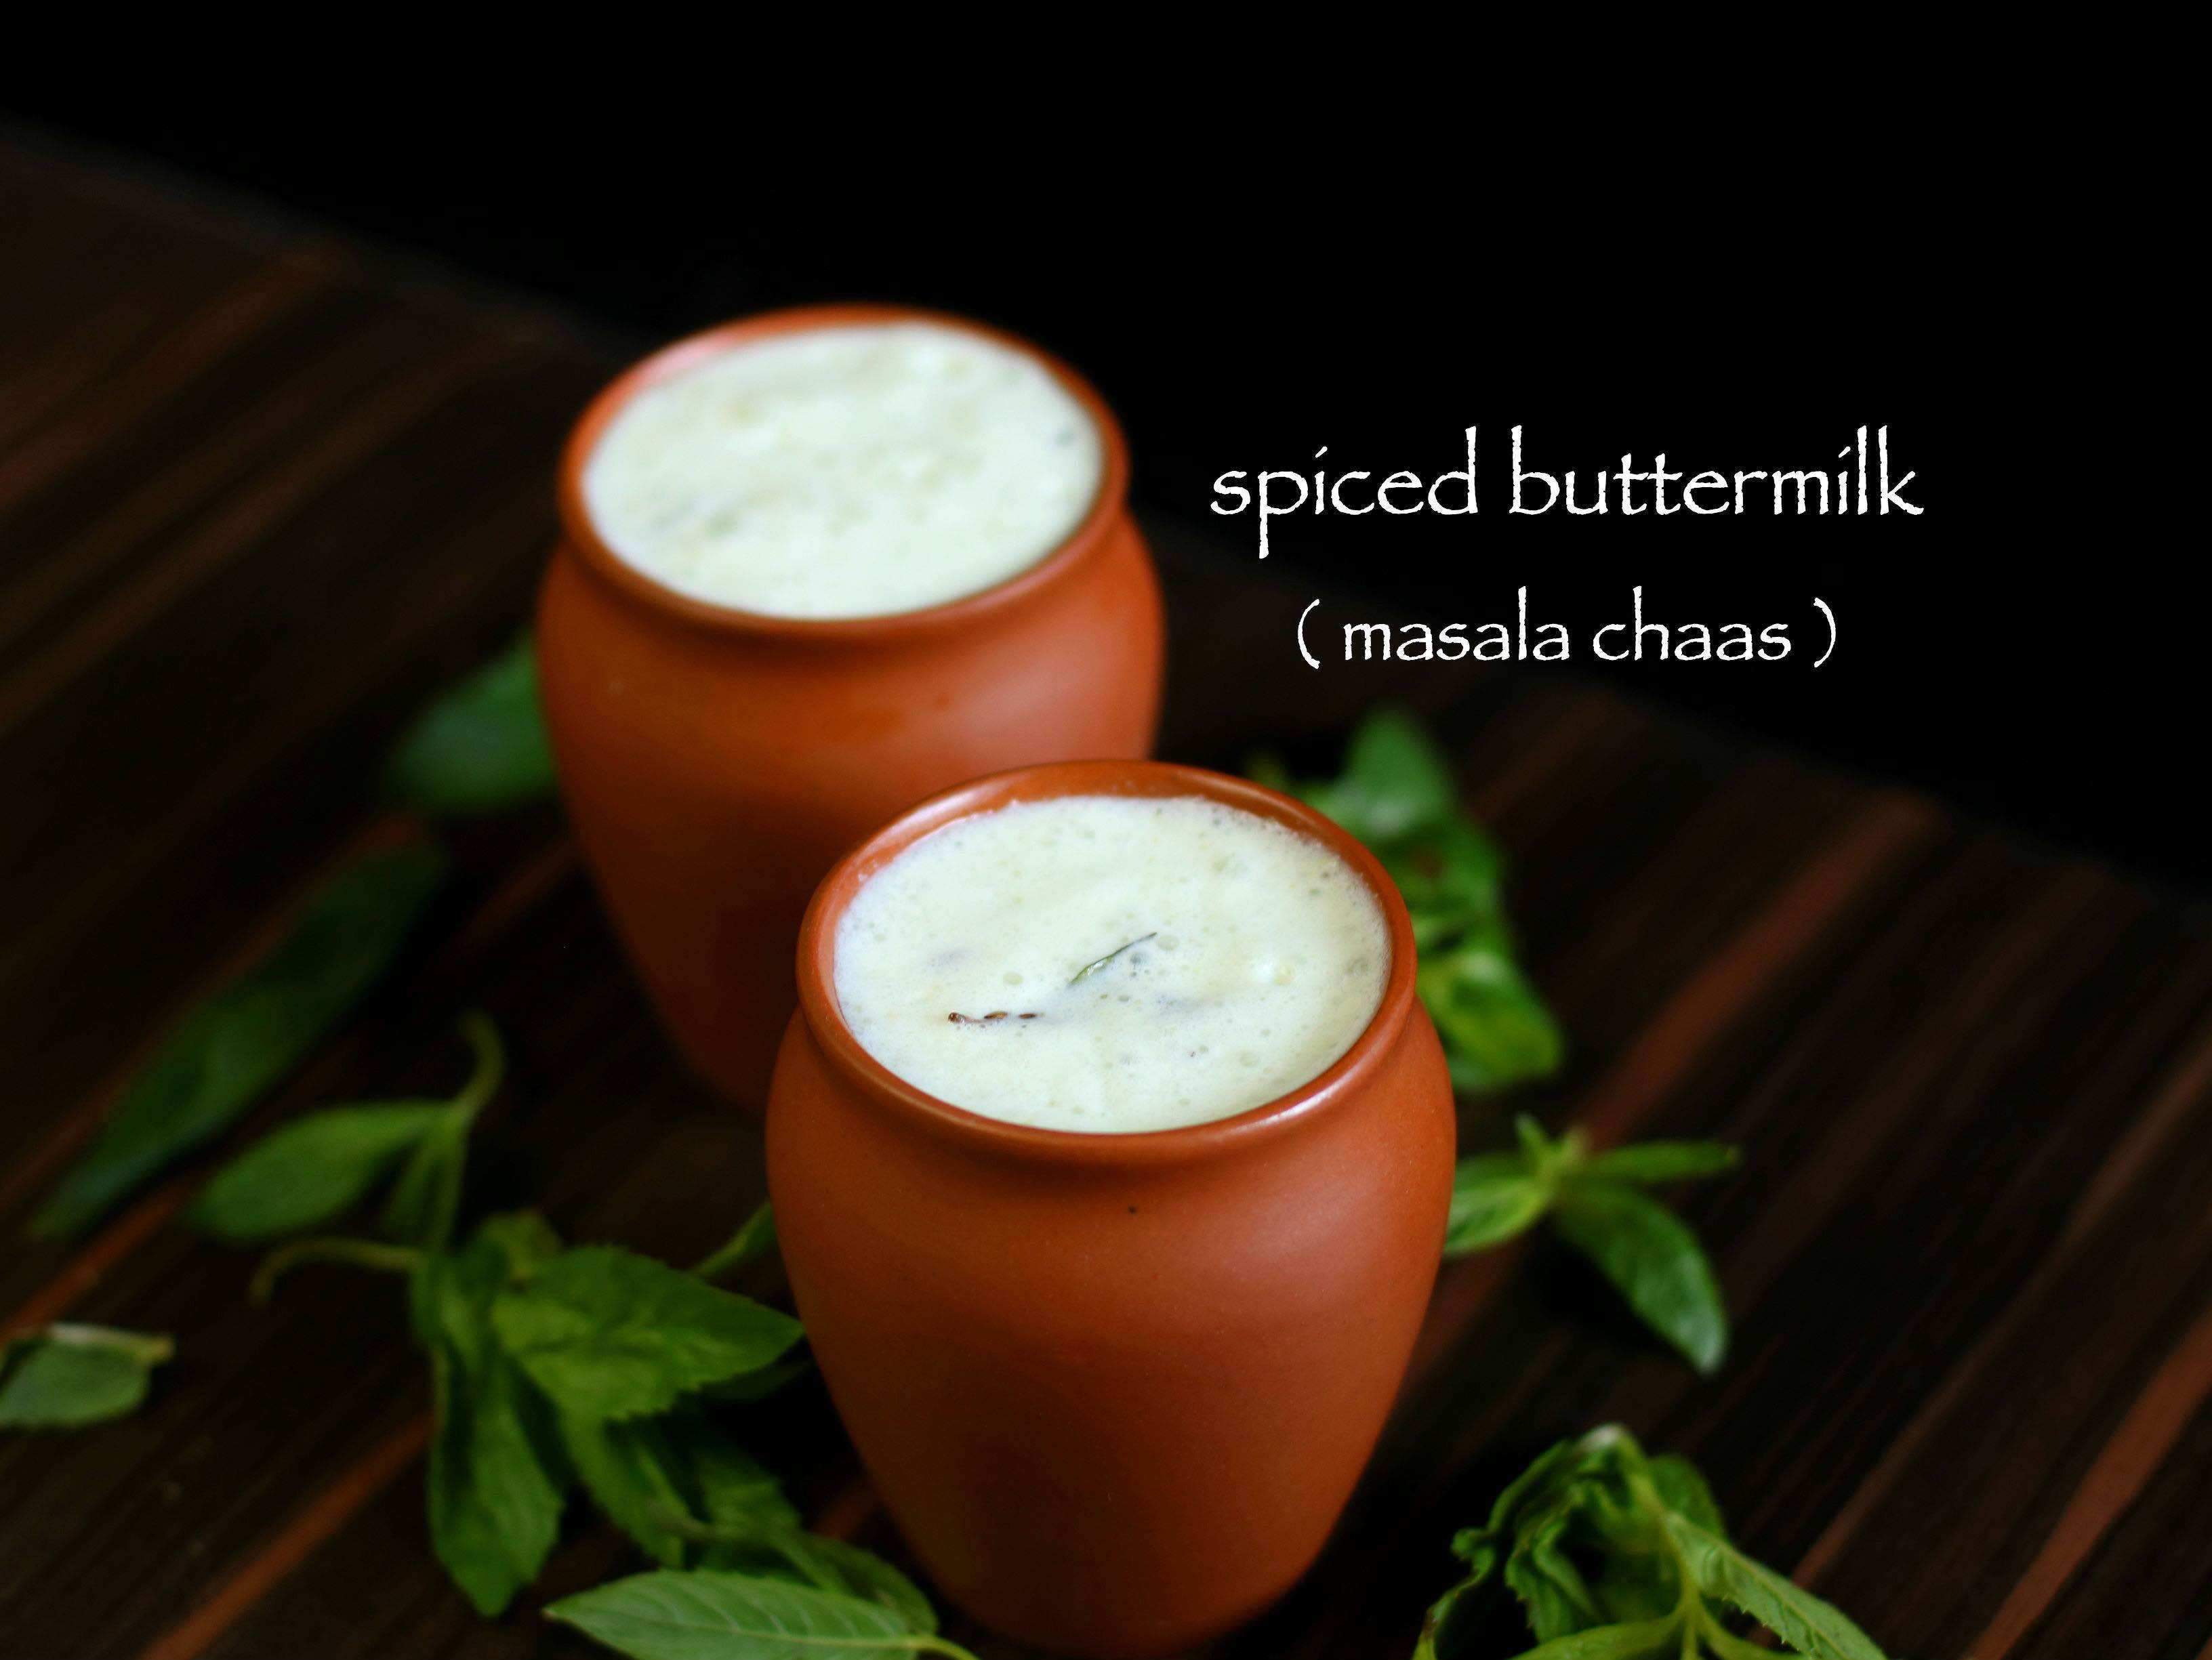 buttermilk recipe | spiced buttermilk recipe | chaas masala recipe